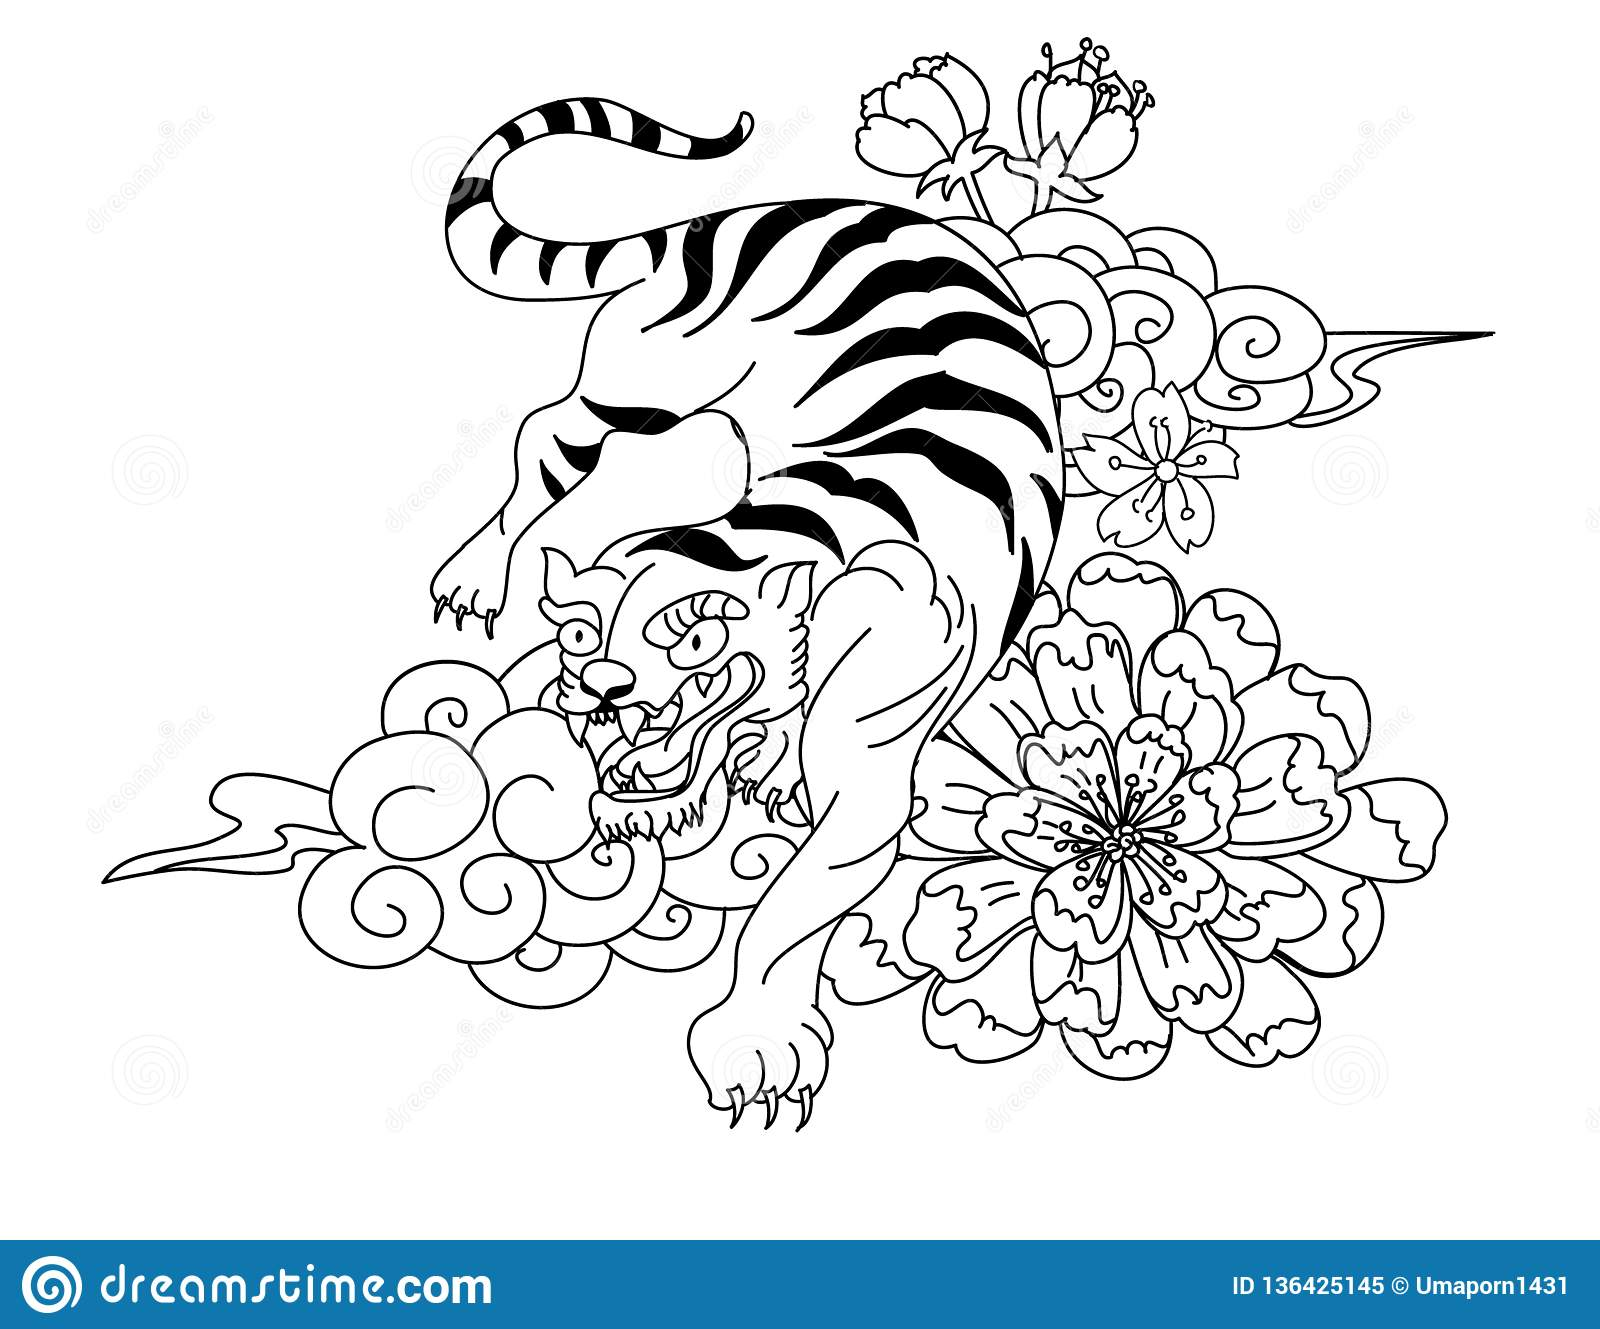 7df7d759f Chinese tiger with sakura flower and water splash tattoo.Illustration  design tiger and cherry peach